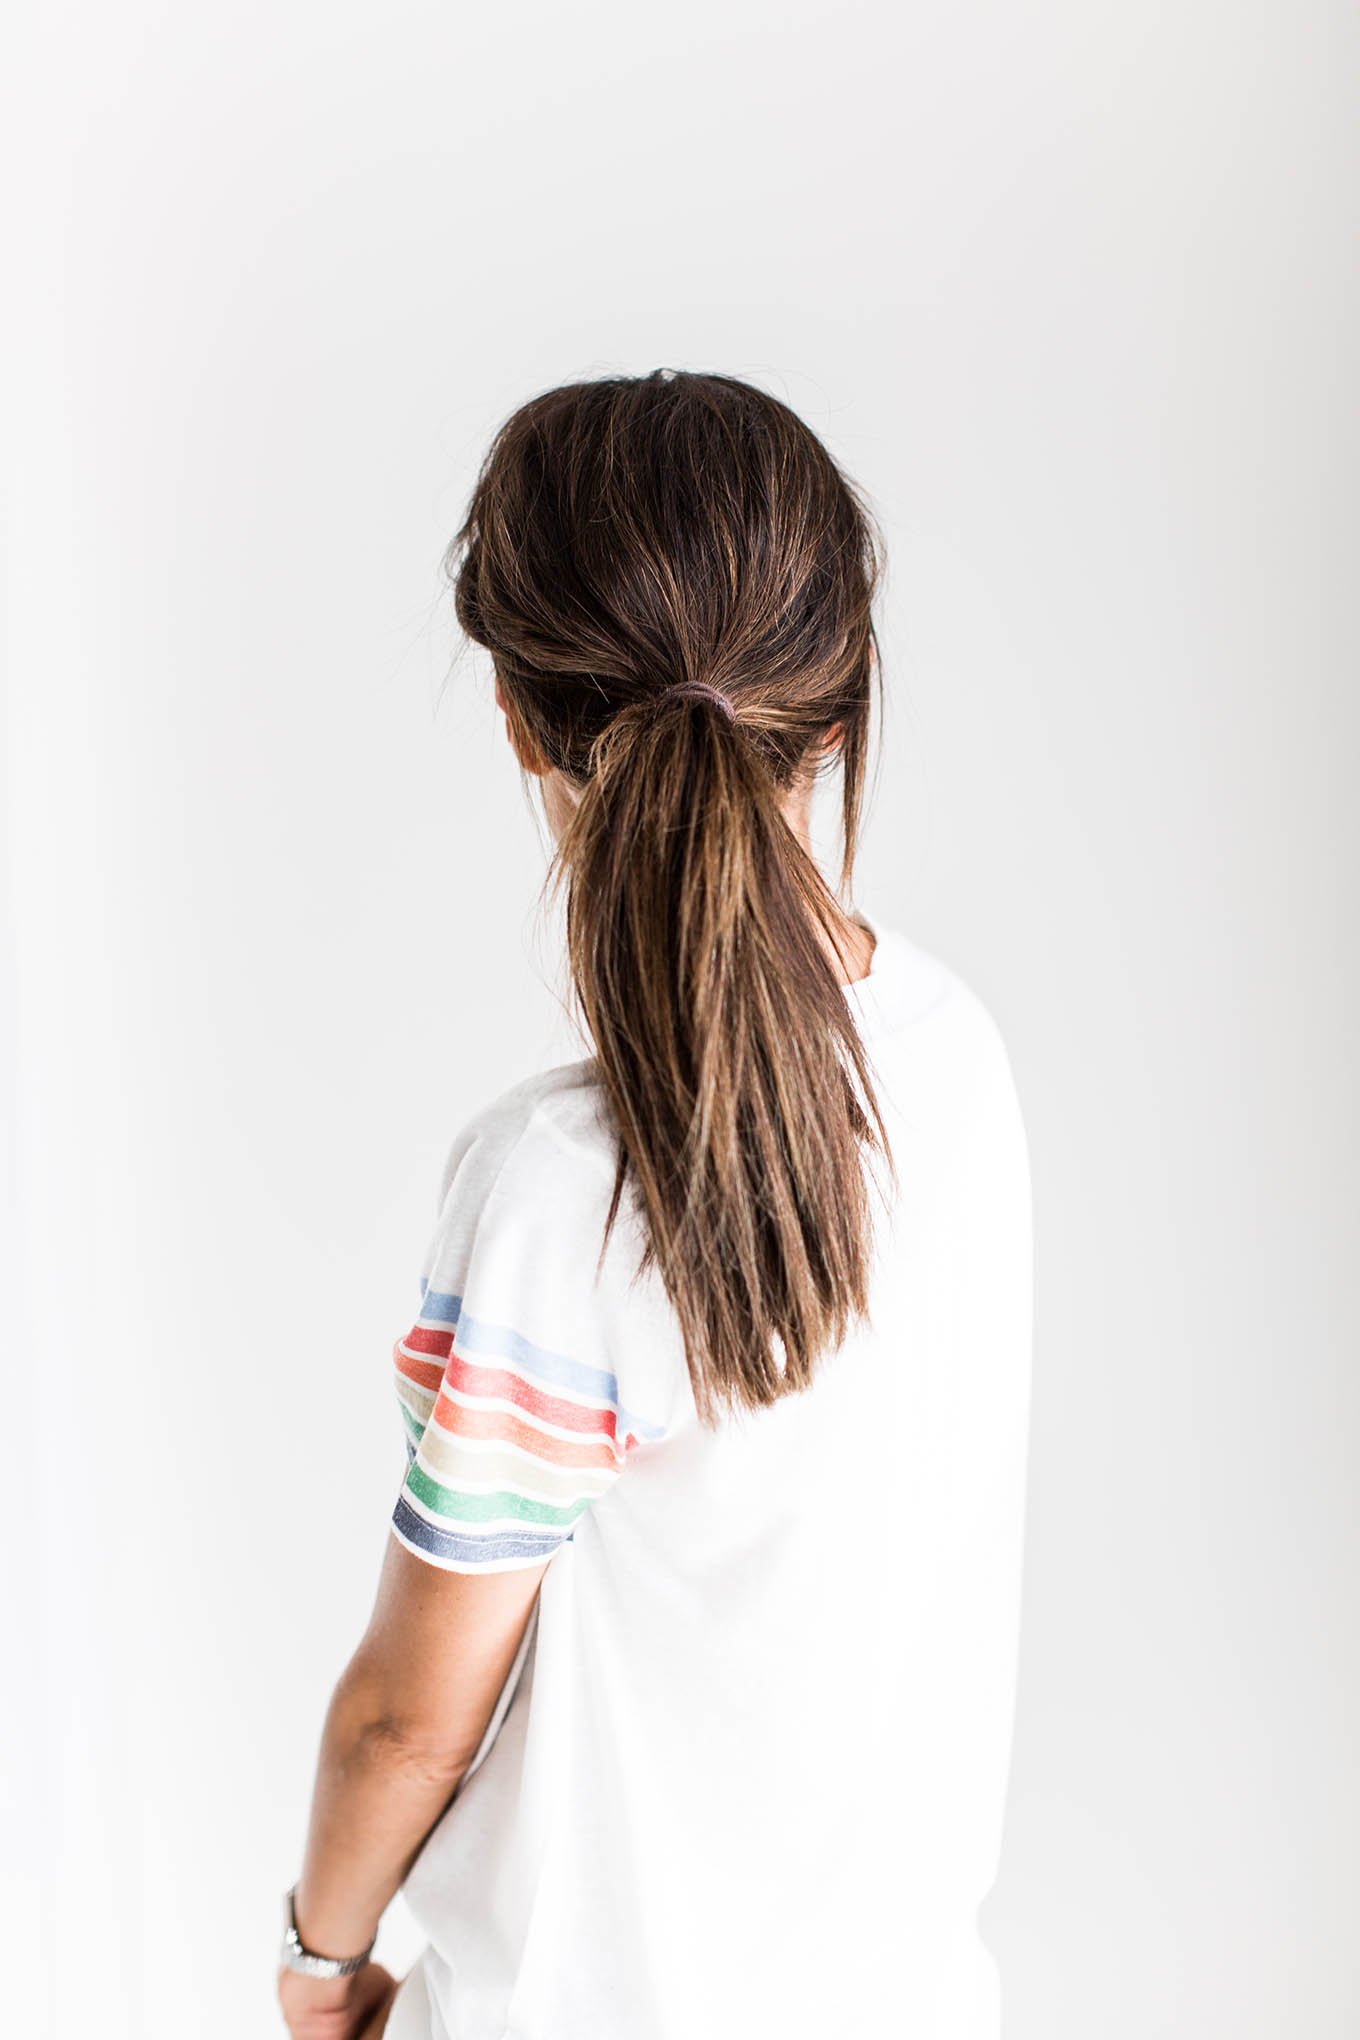 Very Simple If You Re Running Errands Or Even Getting A Cup Of Coffee With Some Friends Hairstyles